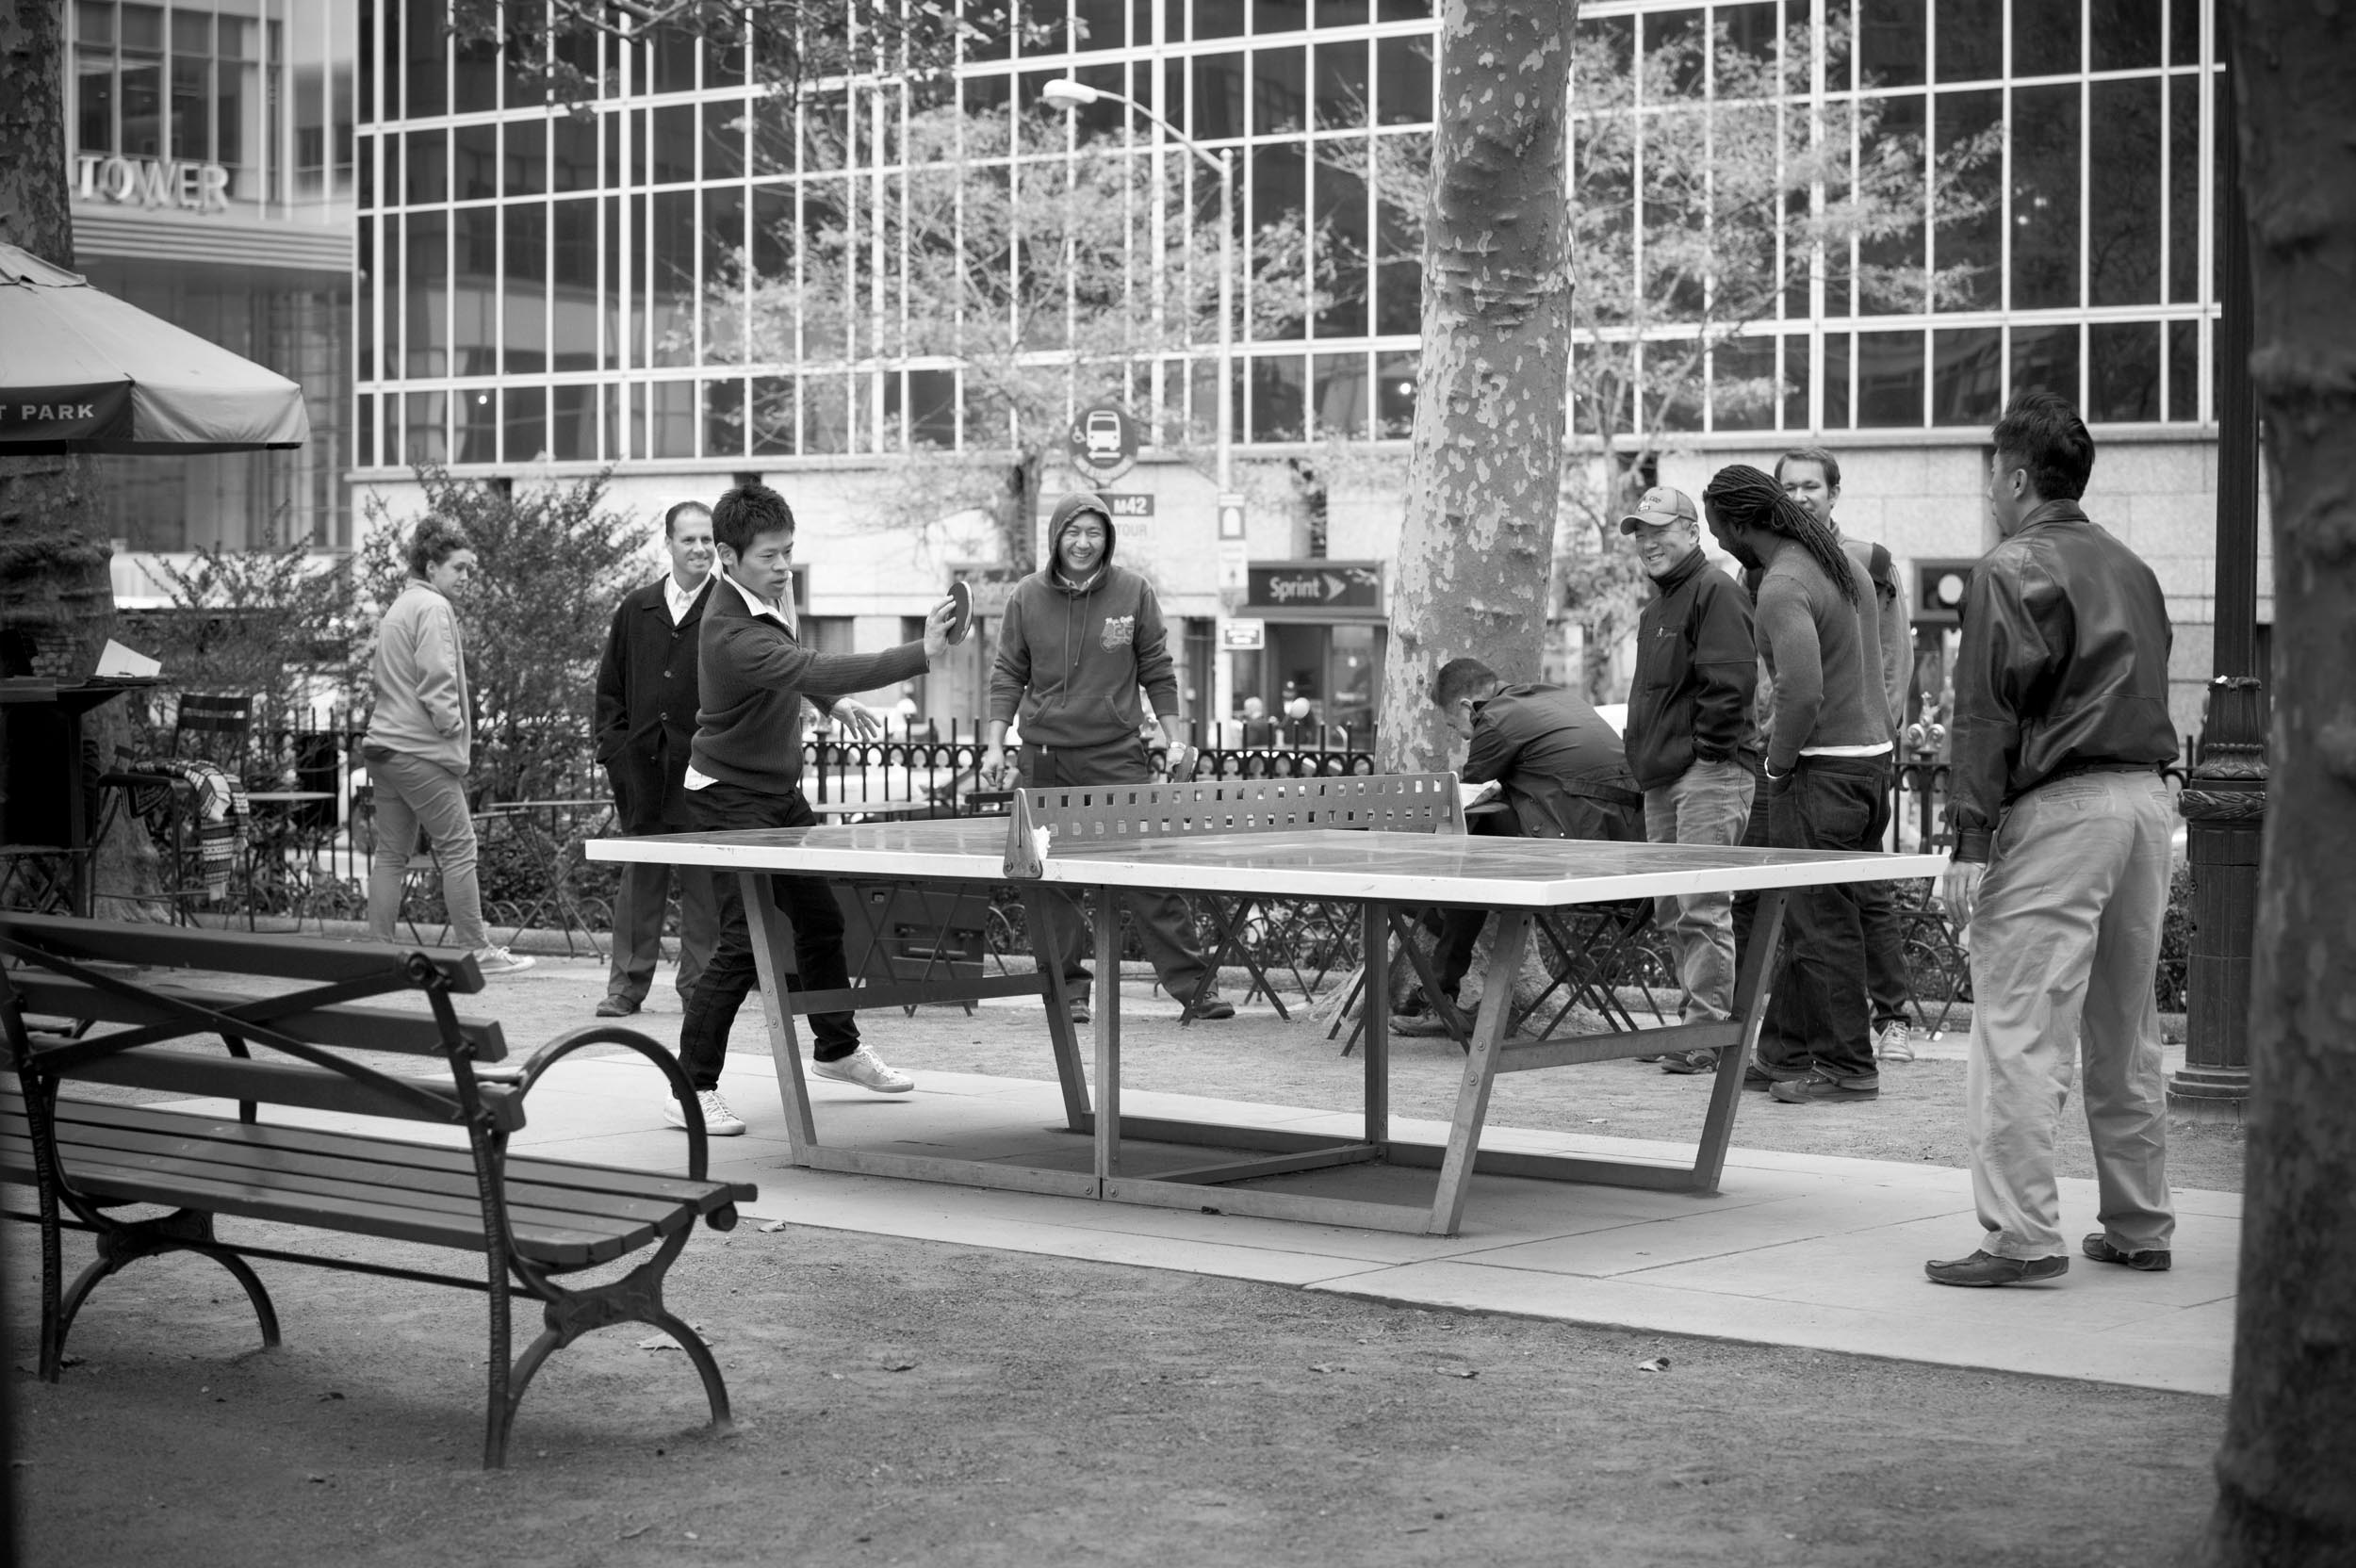 pam_korman_photography-ping-pong_diplomacy-bryant_park_new_york_city-11.jpg